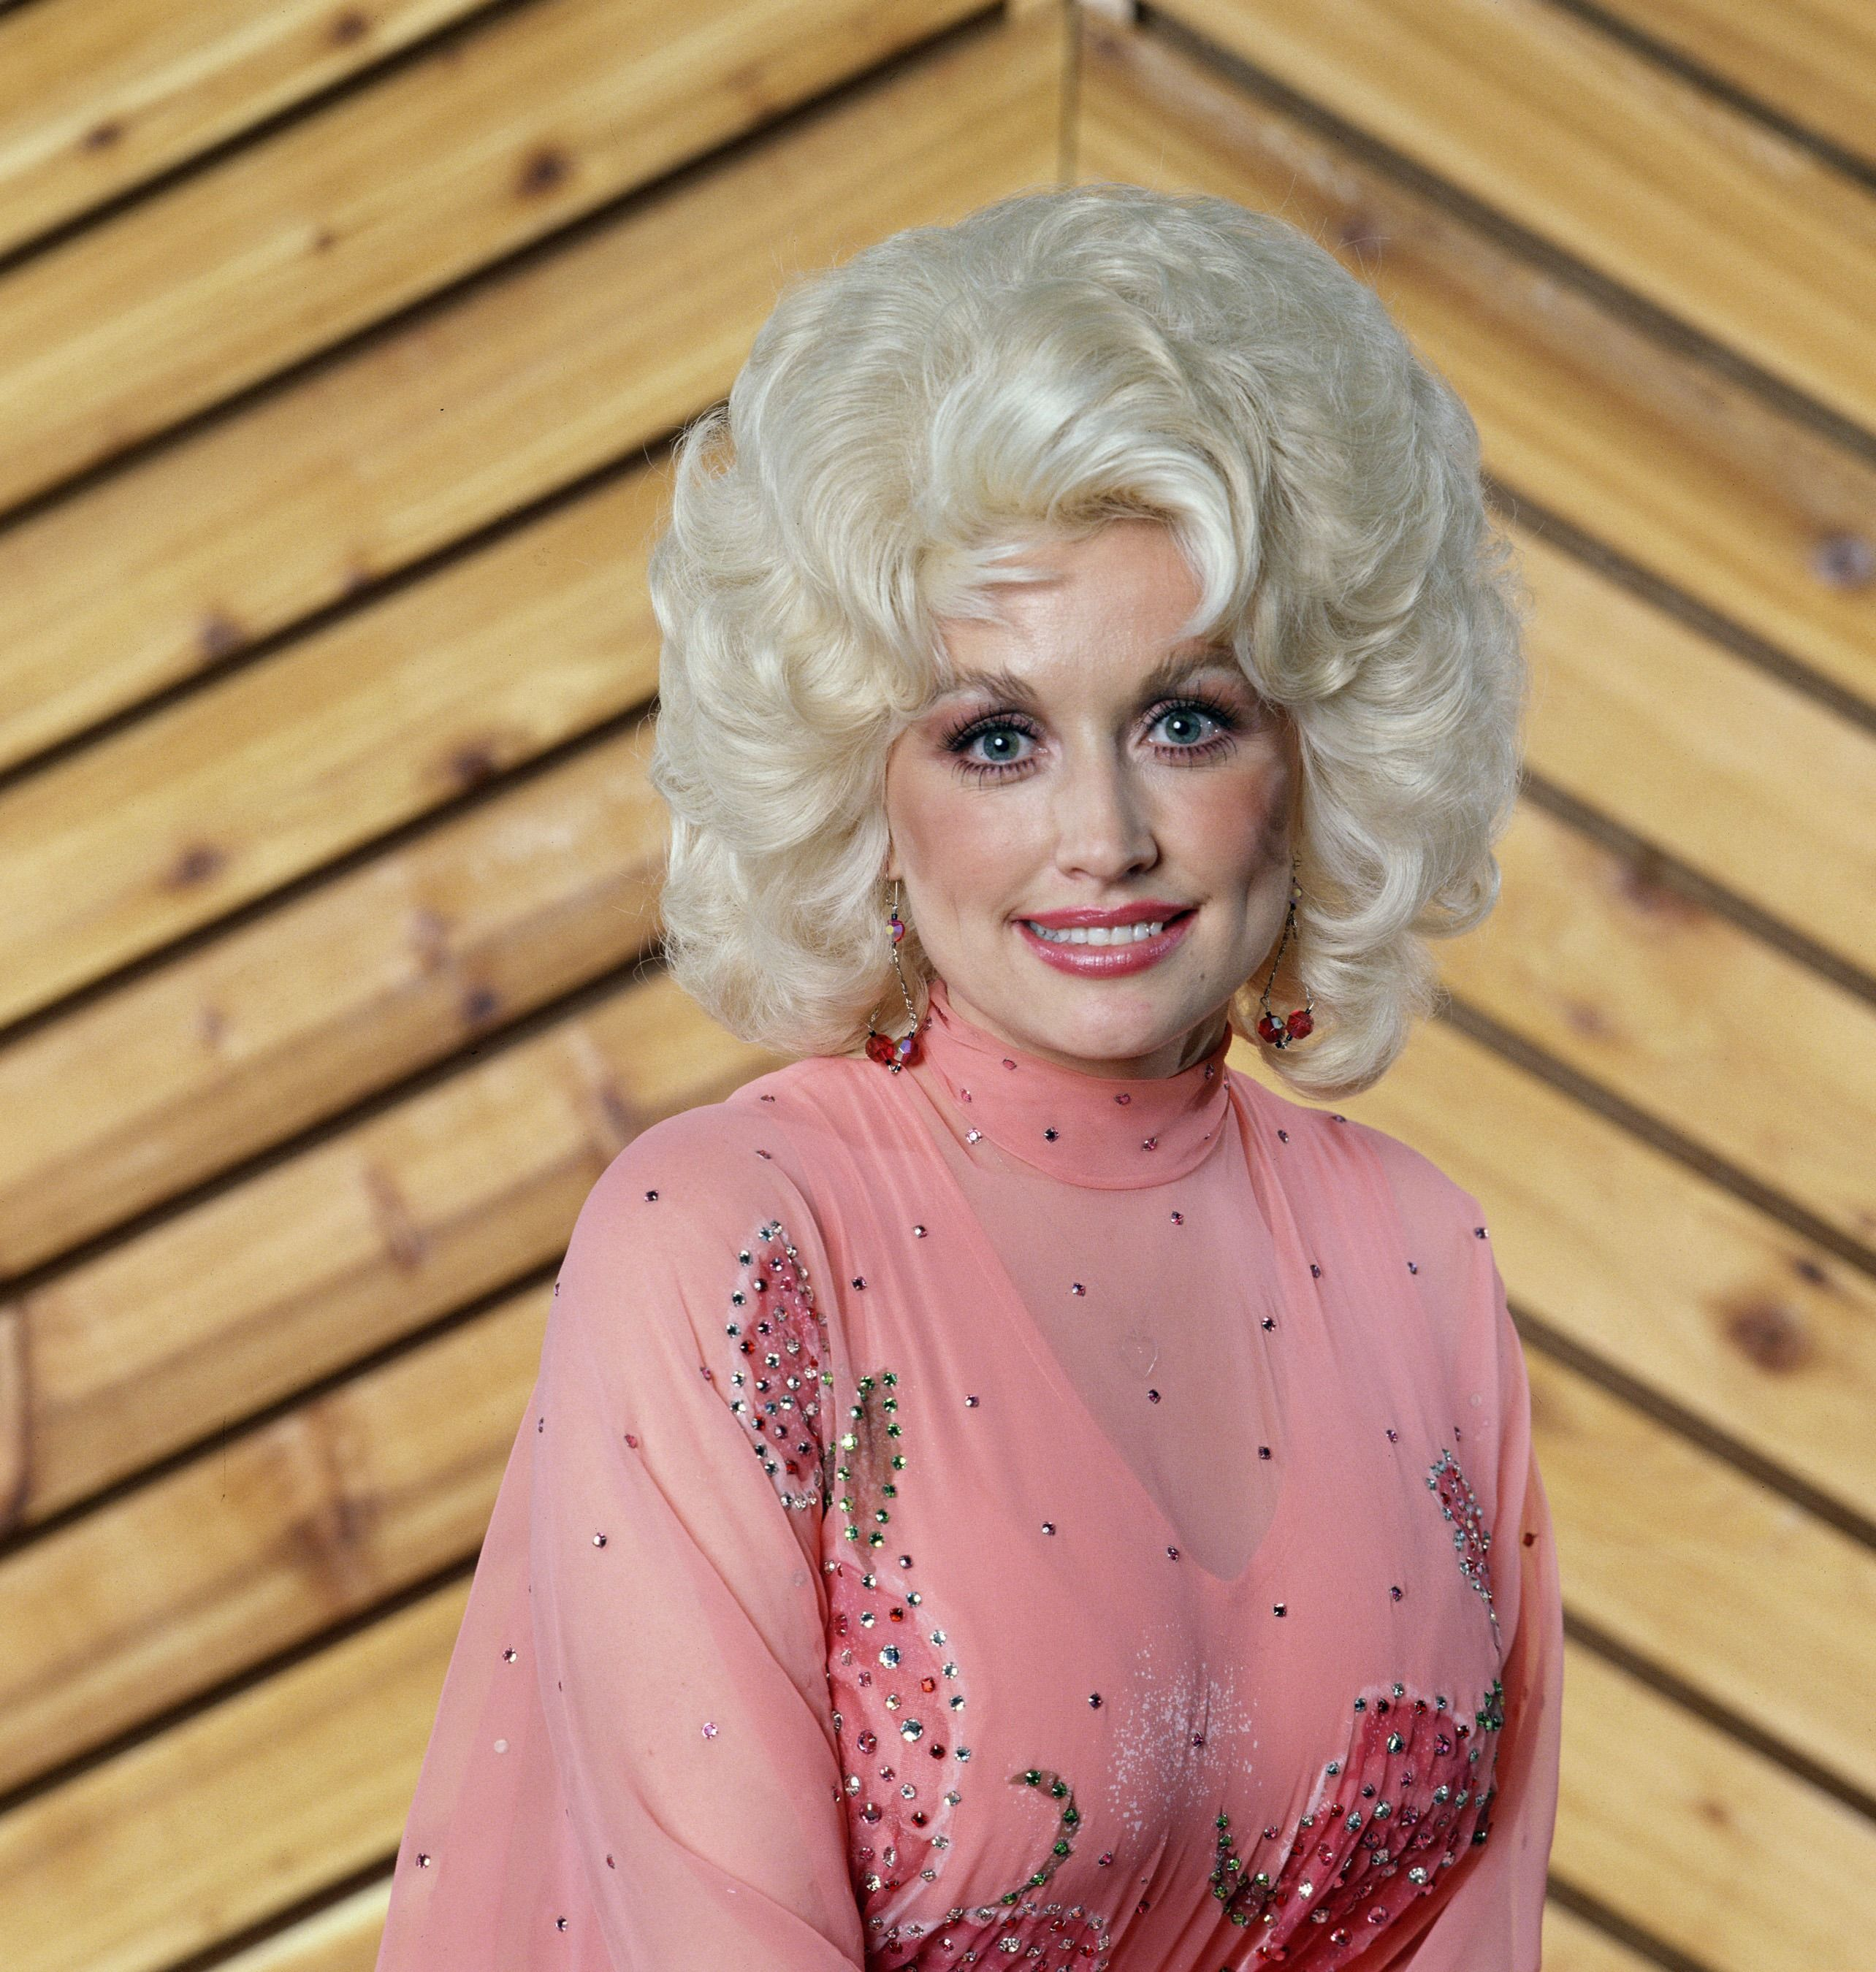 dolly parton youngdolly parton jolene, dolly parton young, dolly parton 9 to 5, dolly parton jolene lyrics, dolly parton jolene текст, dolly parton – the bargain store, dolly parton 2016, dolly parton – jolene скачать, dolly parton jolene mp3, dolly parton – jolene (1973), dolly parton - ooo-eee, dolly parton википедия, dolly parton скачать, dolly parton miley cyrus, dolly parton jolene chords, dolly parton wiki, dolly parton песни, dolly parton photo, dolly parton those were the days, dolly parton слушать